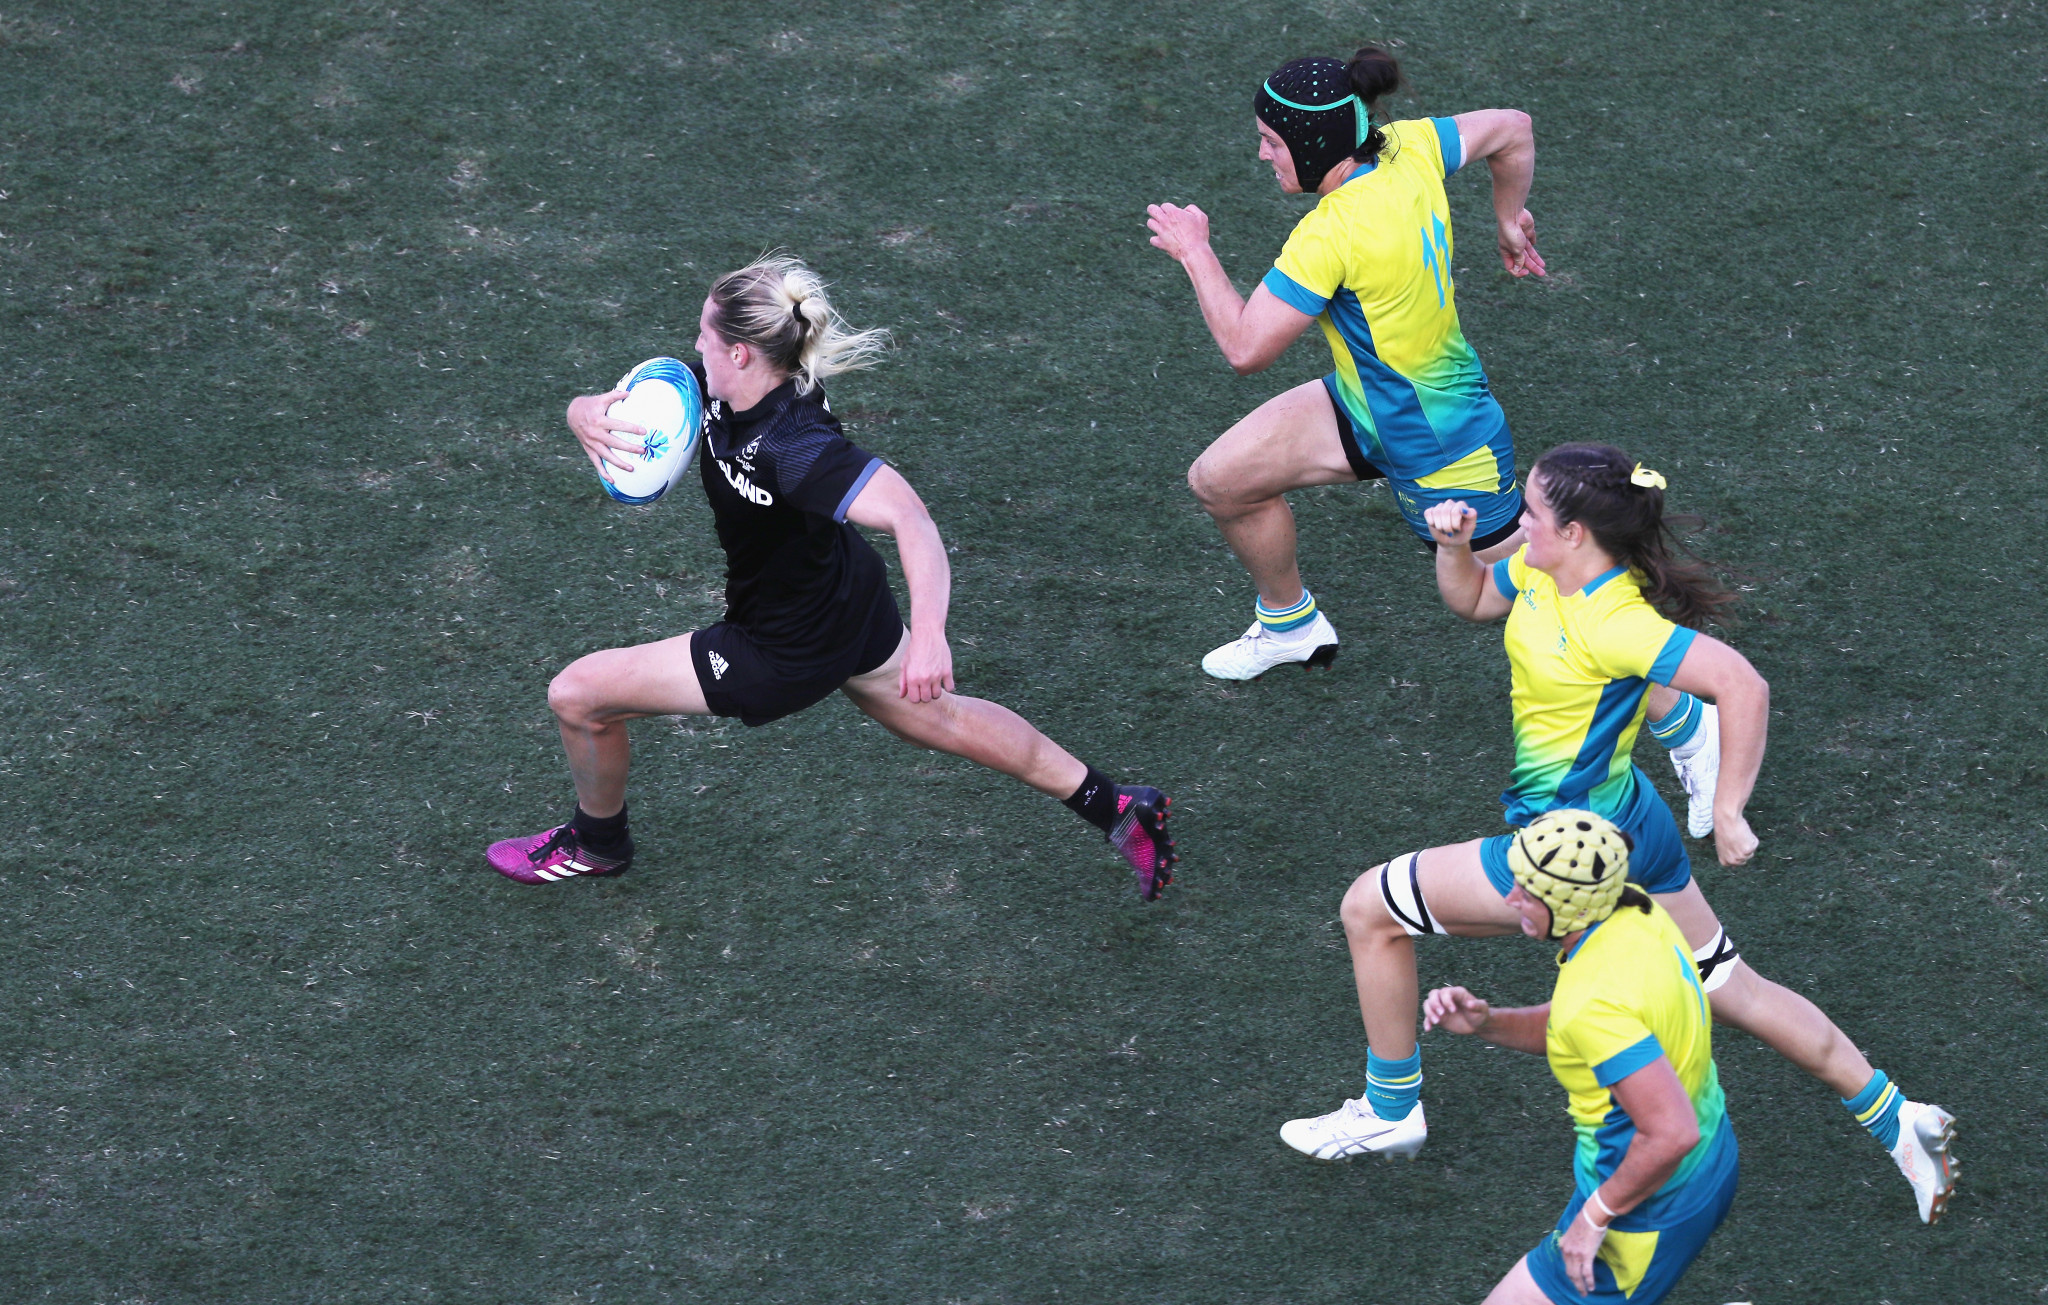 New Zealand clinch rugby sevens double gold to bring sporting action at Gold Coast 2018 to a close